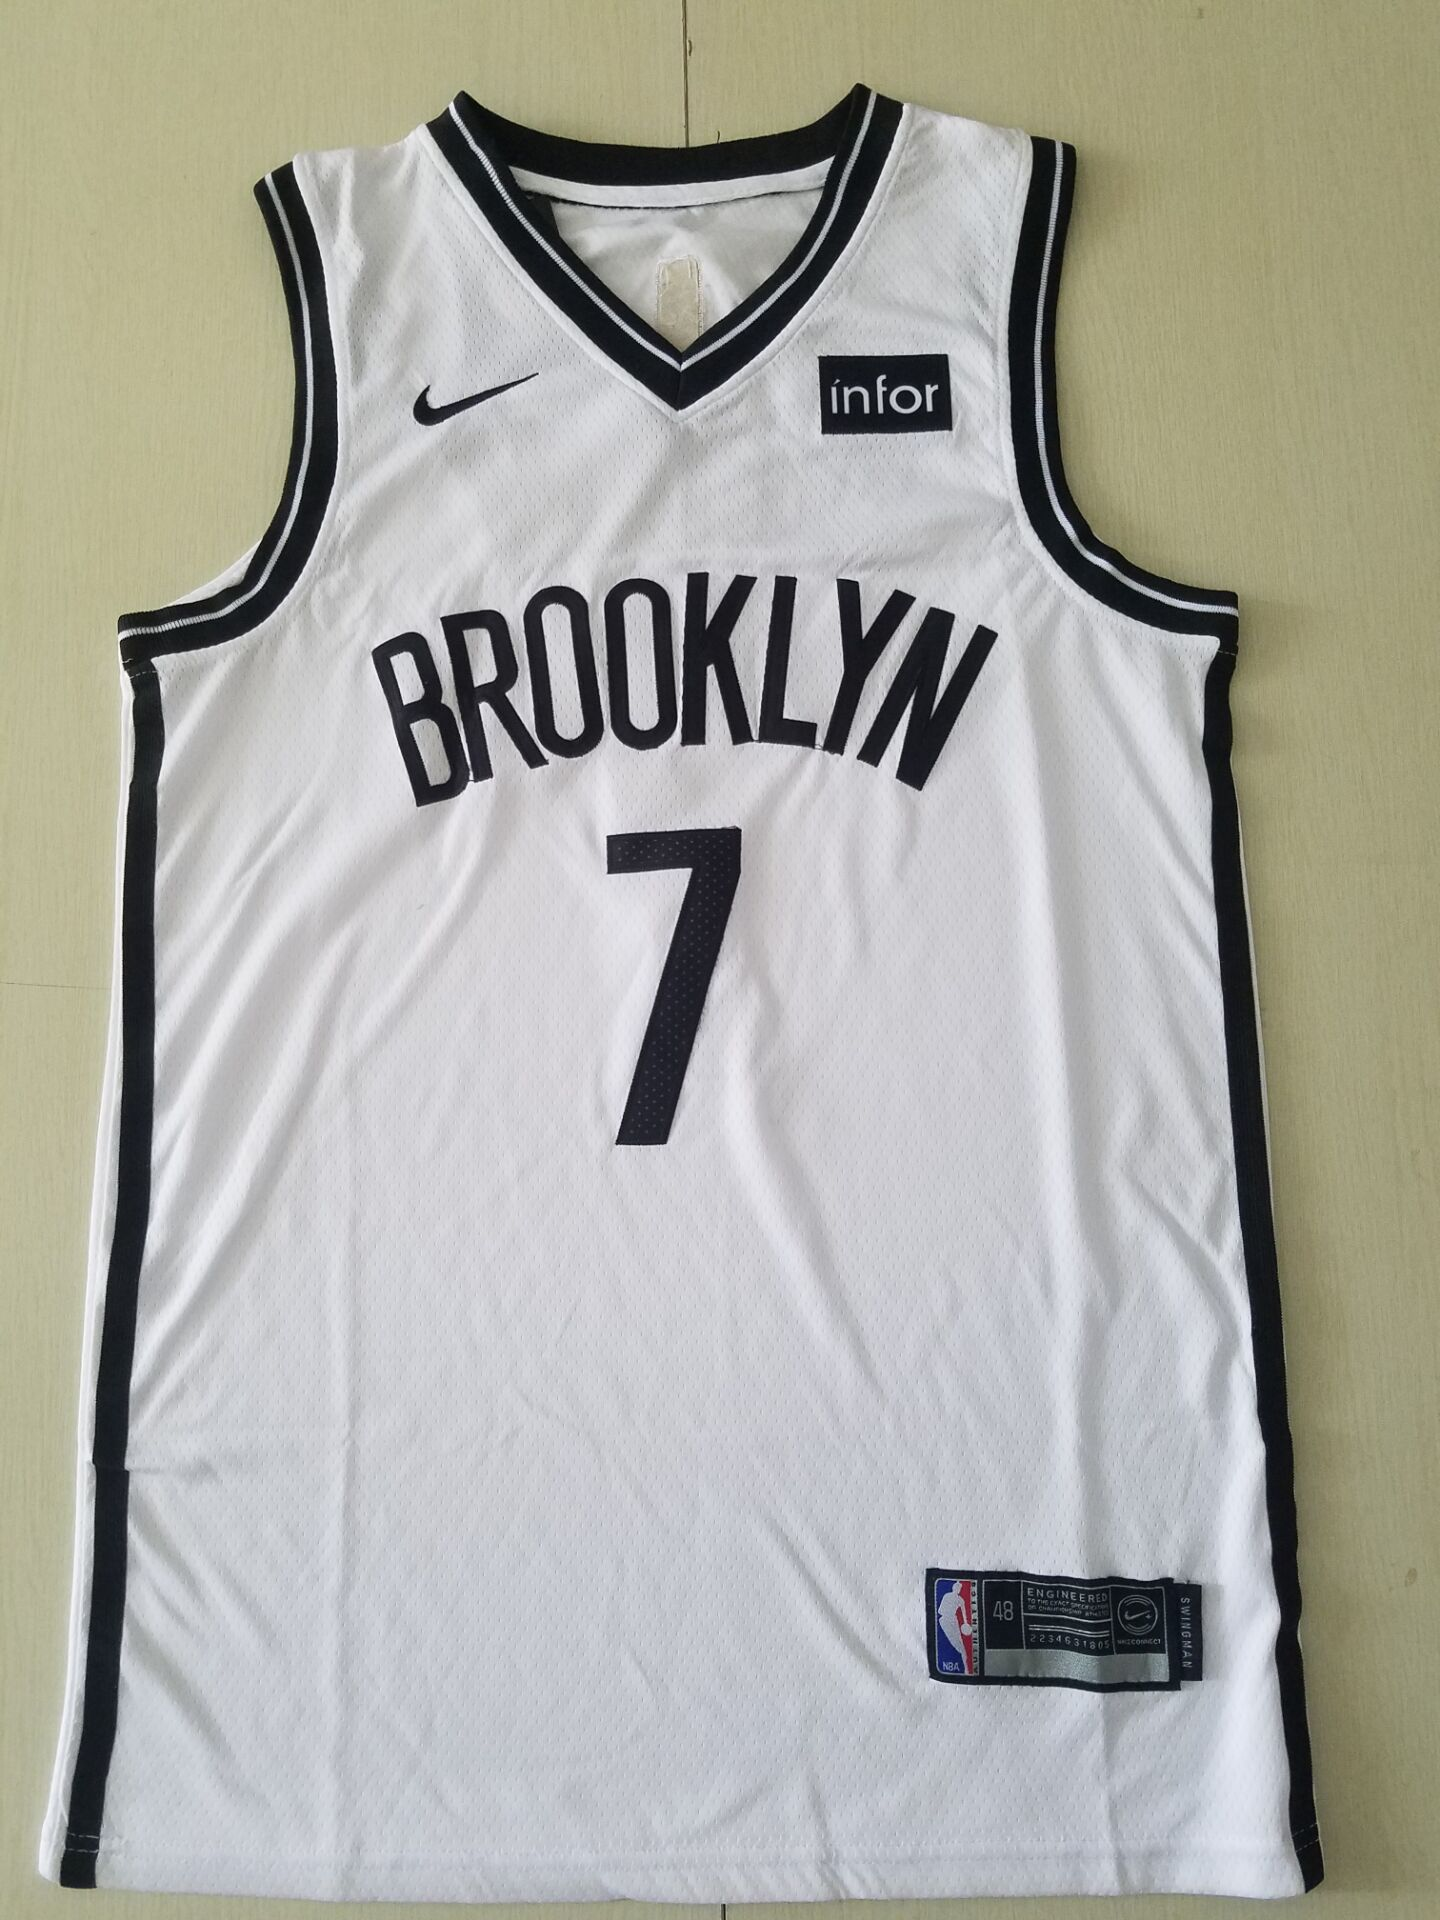 Youth Brooklyn Nets 7 Burant white Nike Game NBA Jerseys